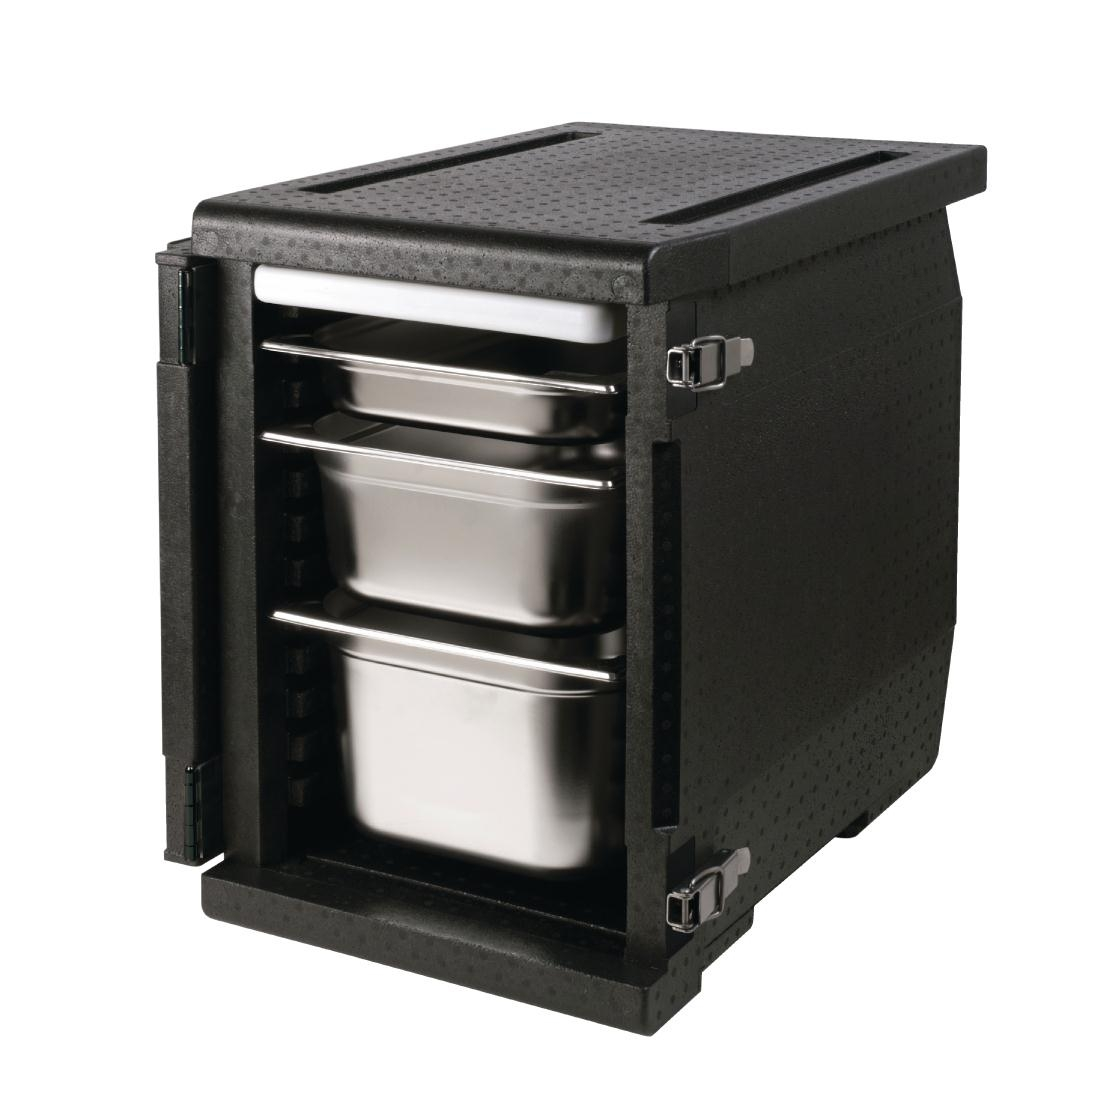 Conteneur Thermo Future Thermobox GN à chargement frontal 65L